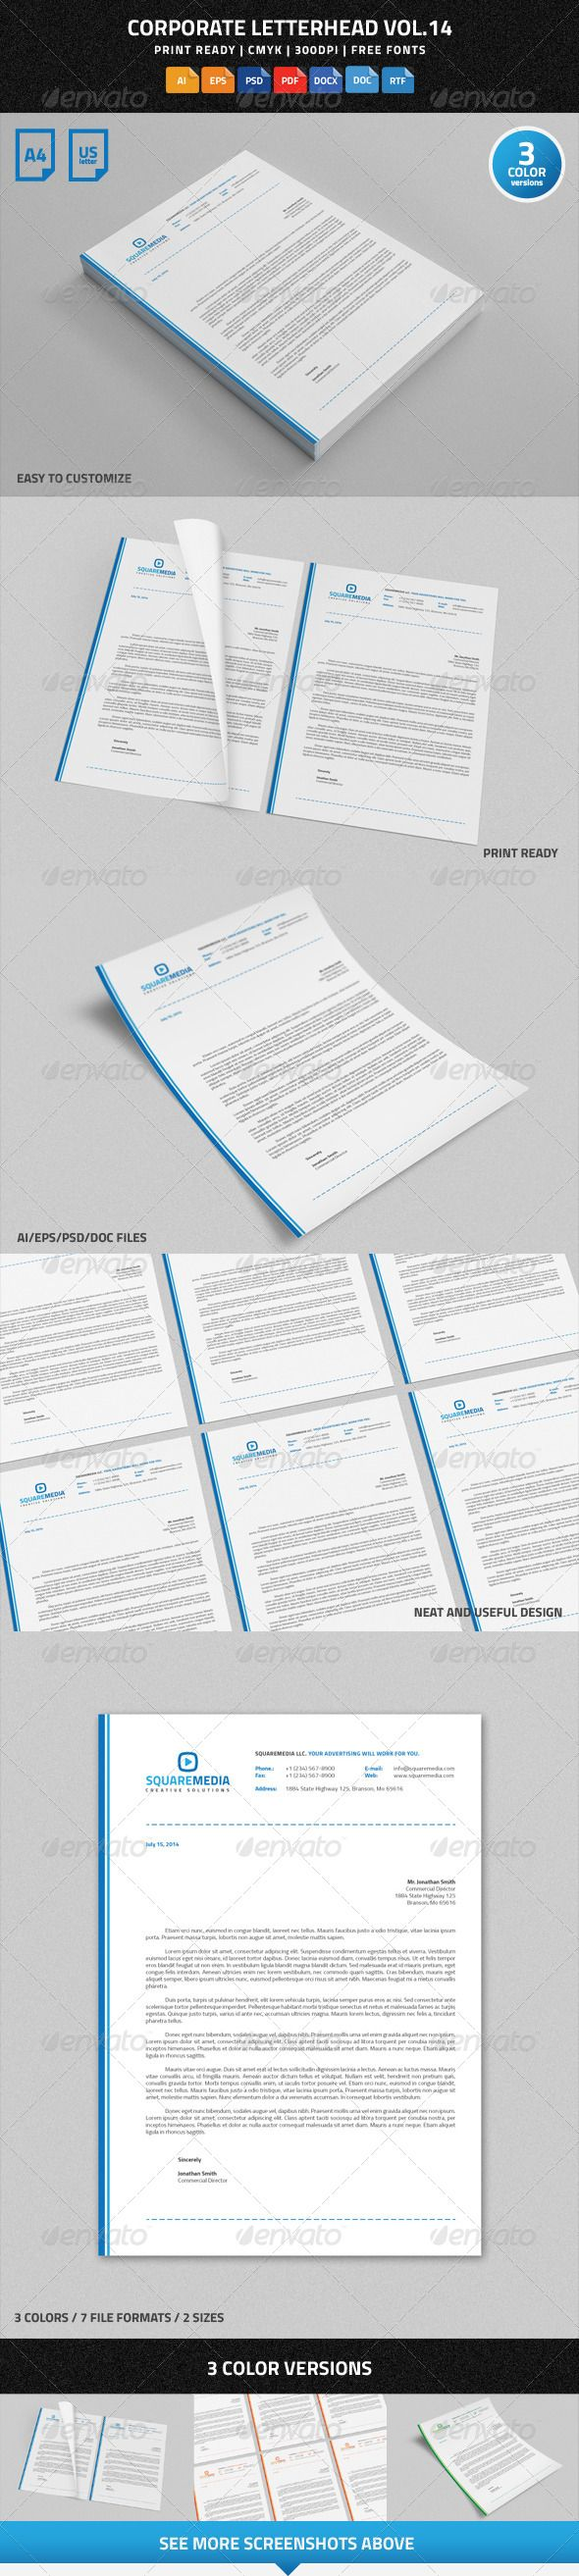 Corporate letterhead vol14 with ms word docdocx word doc corporate letterhead vol14 with ms word docdocx spiritdancerdesigns Gallery